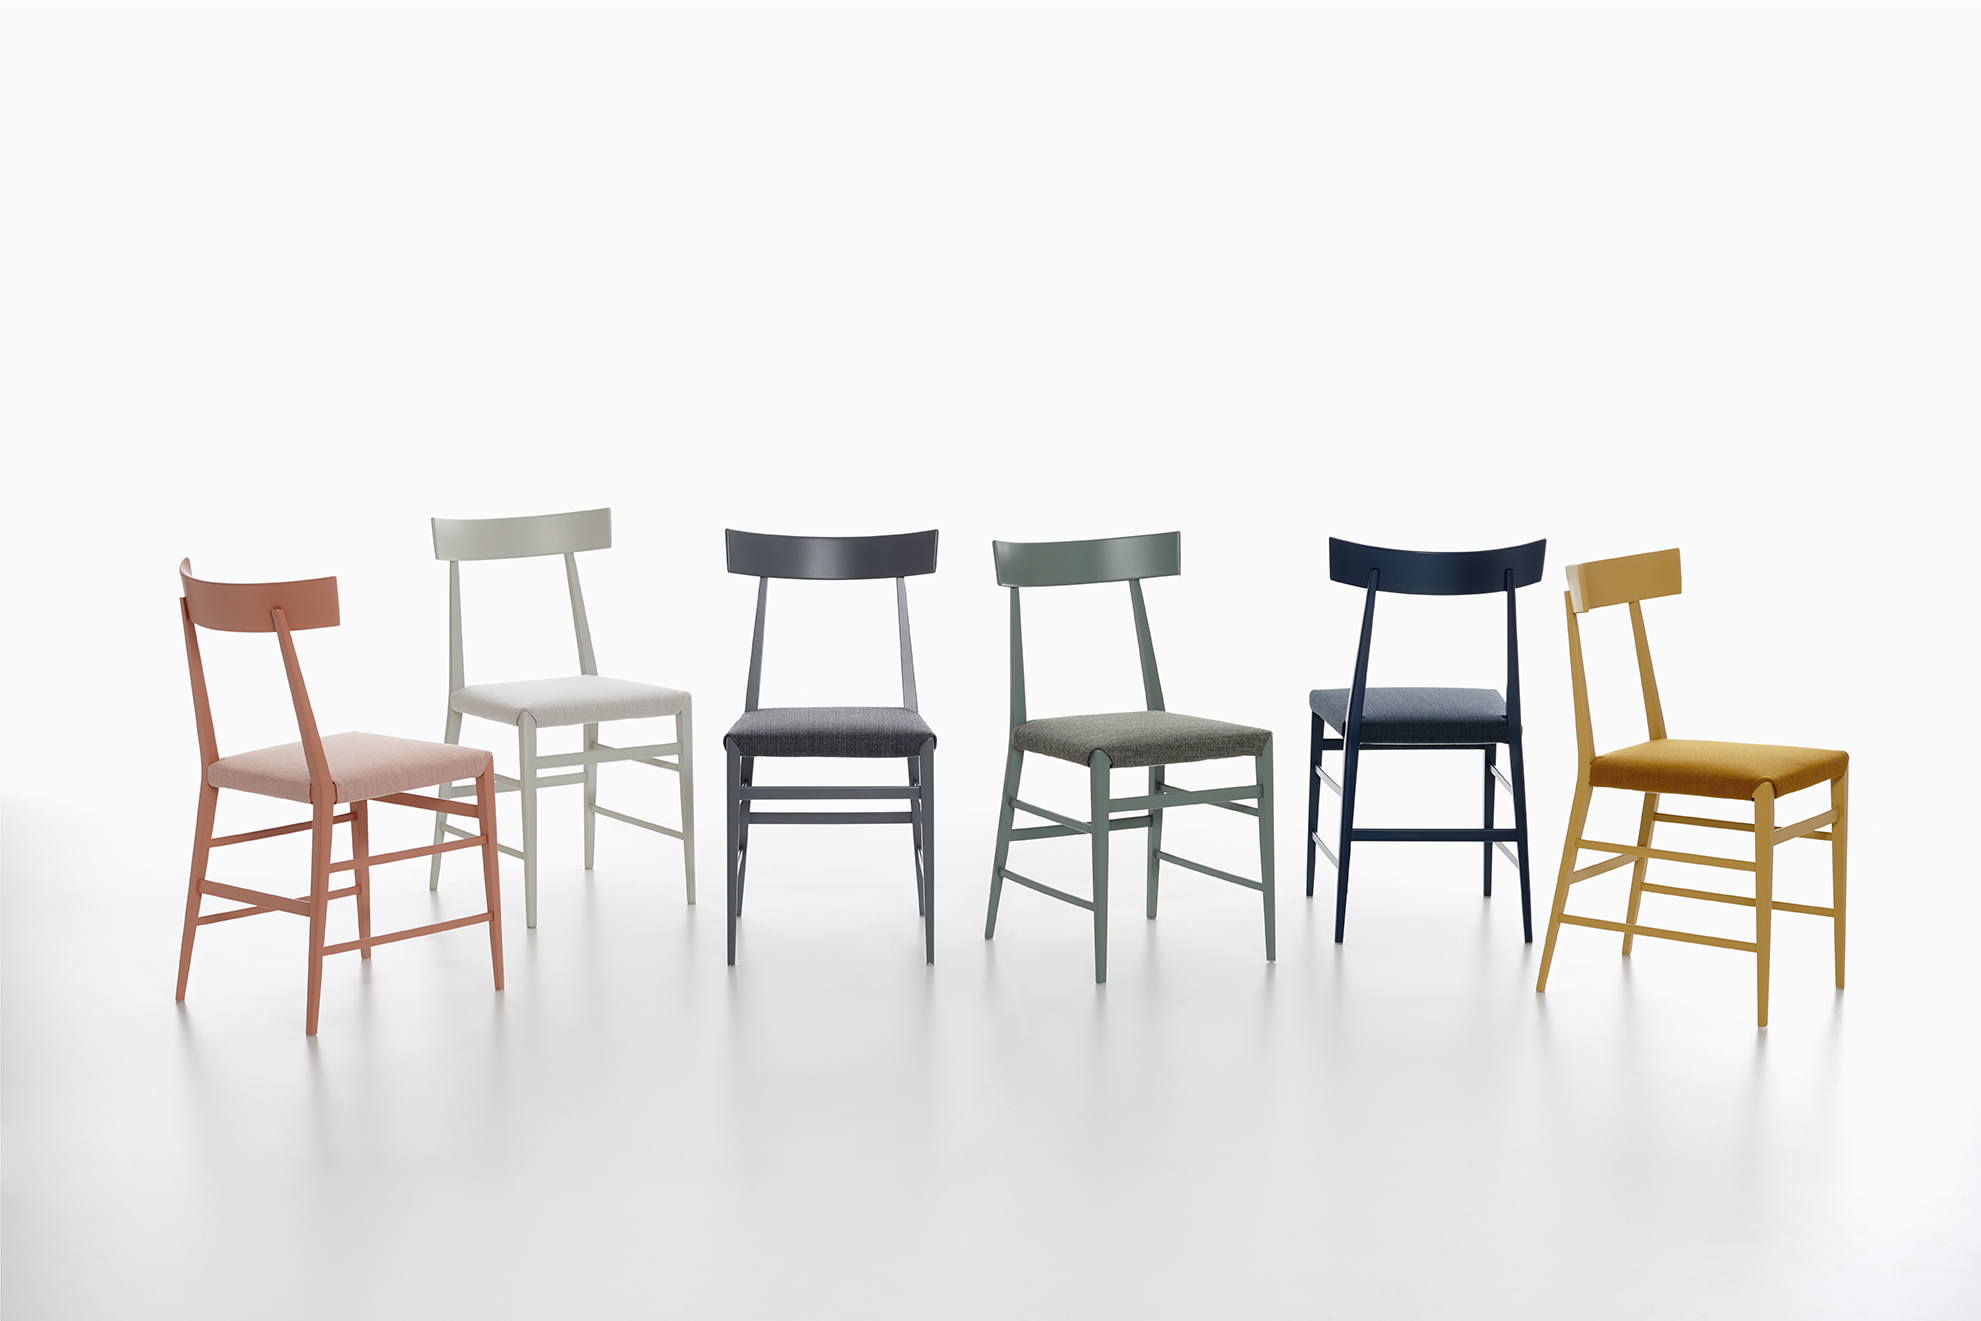 The 'Noli' dining / side chair by  Ludovica + Roberto Palomba  for Zanotta. The chair shows a strong influence from Gio Ponti's 'Superleggera' chair (which is no bad thing). Available in a host of lovely subdued colours, which along with its visual lightness will make it a favourite with designers.